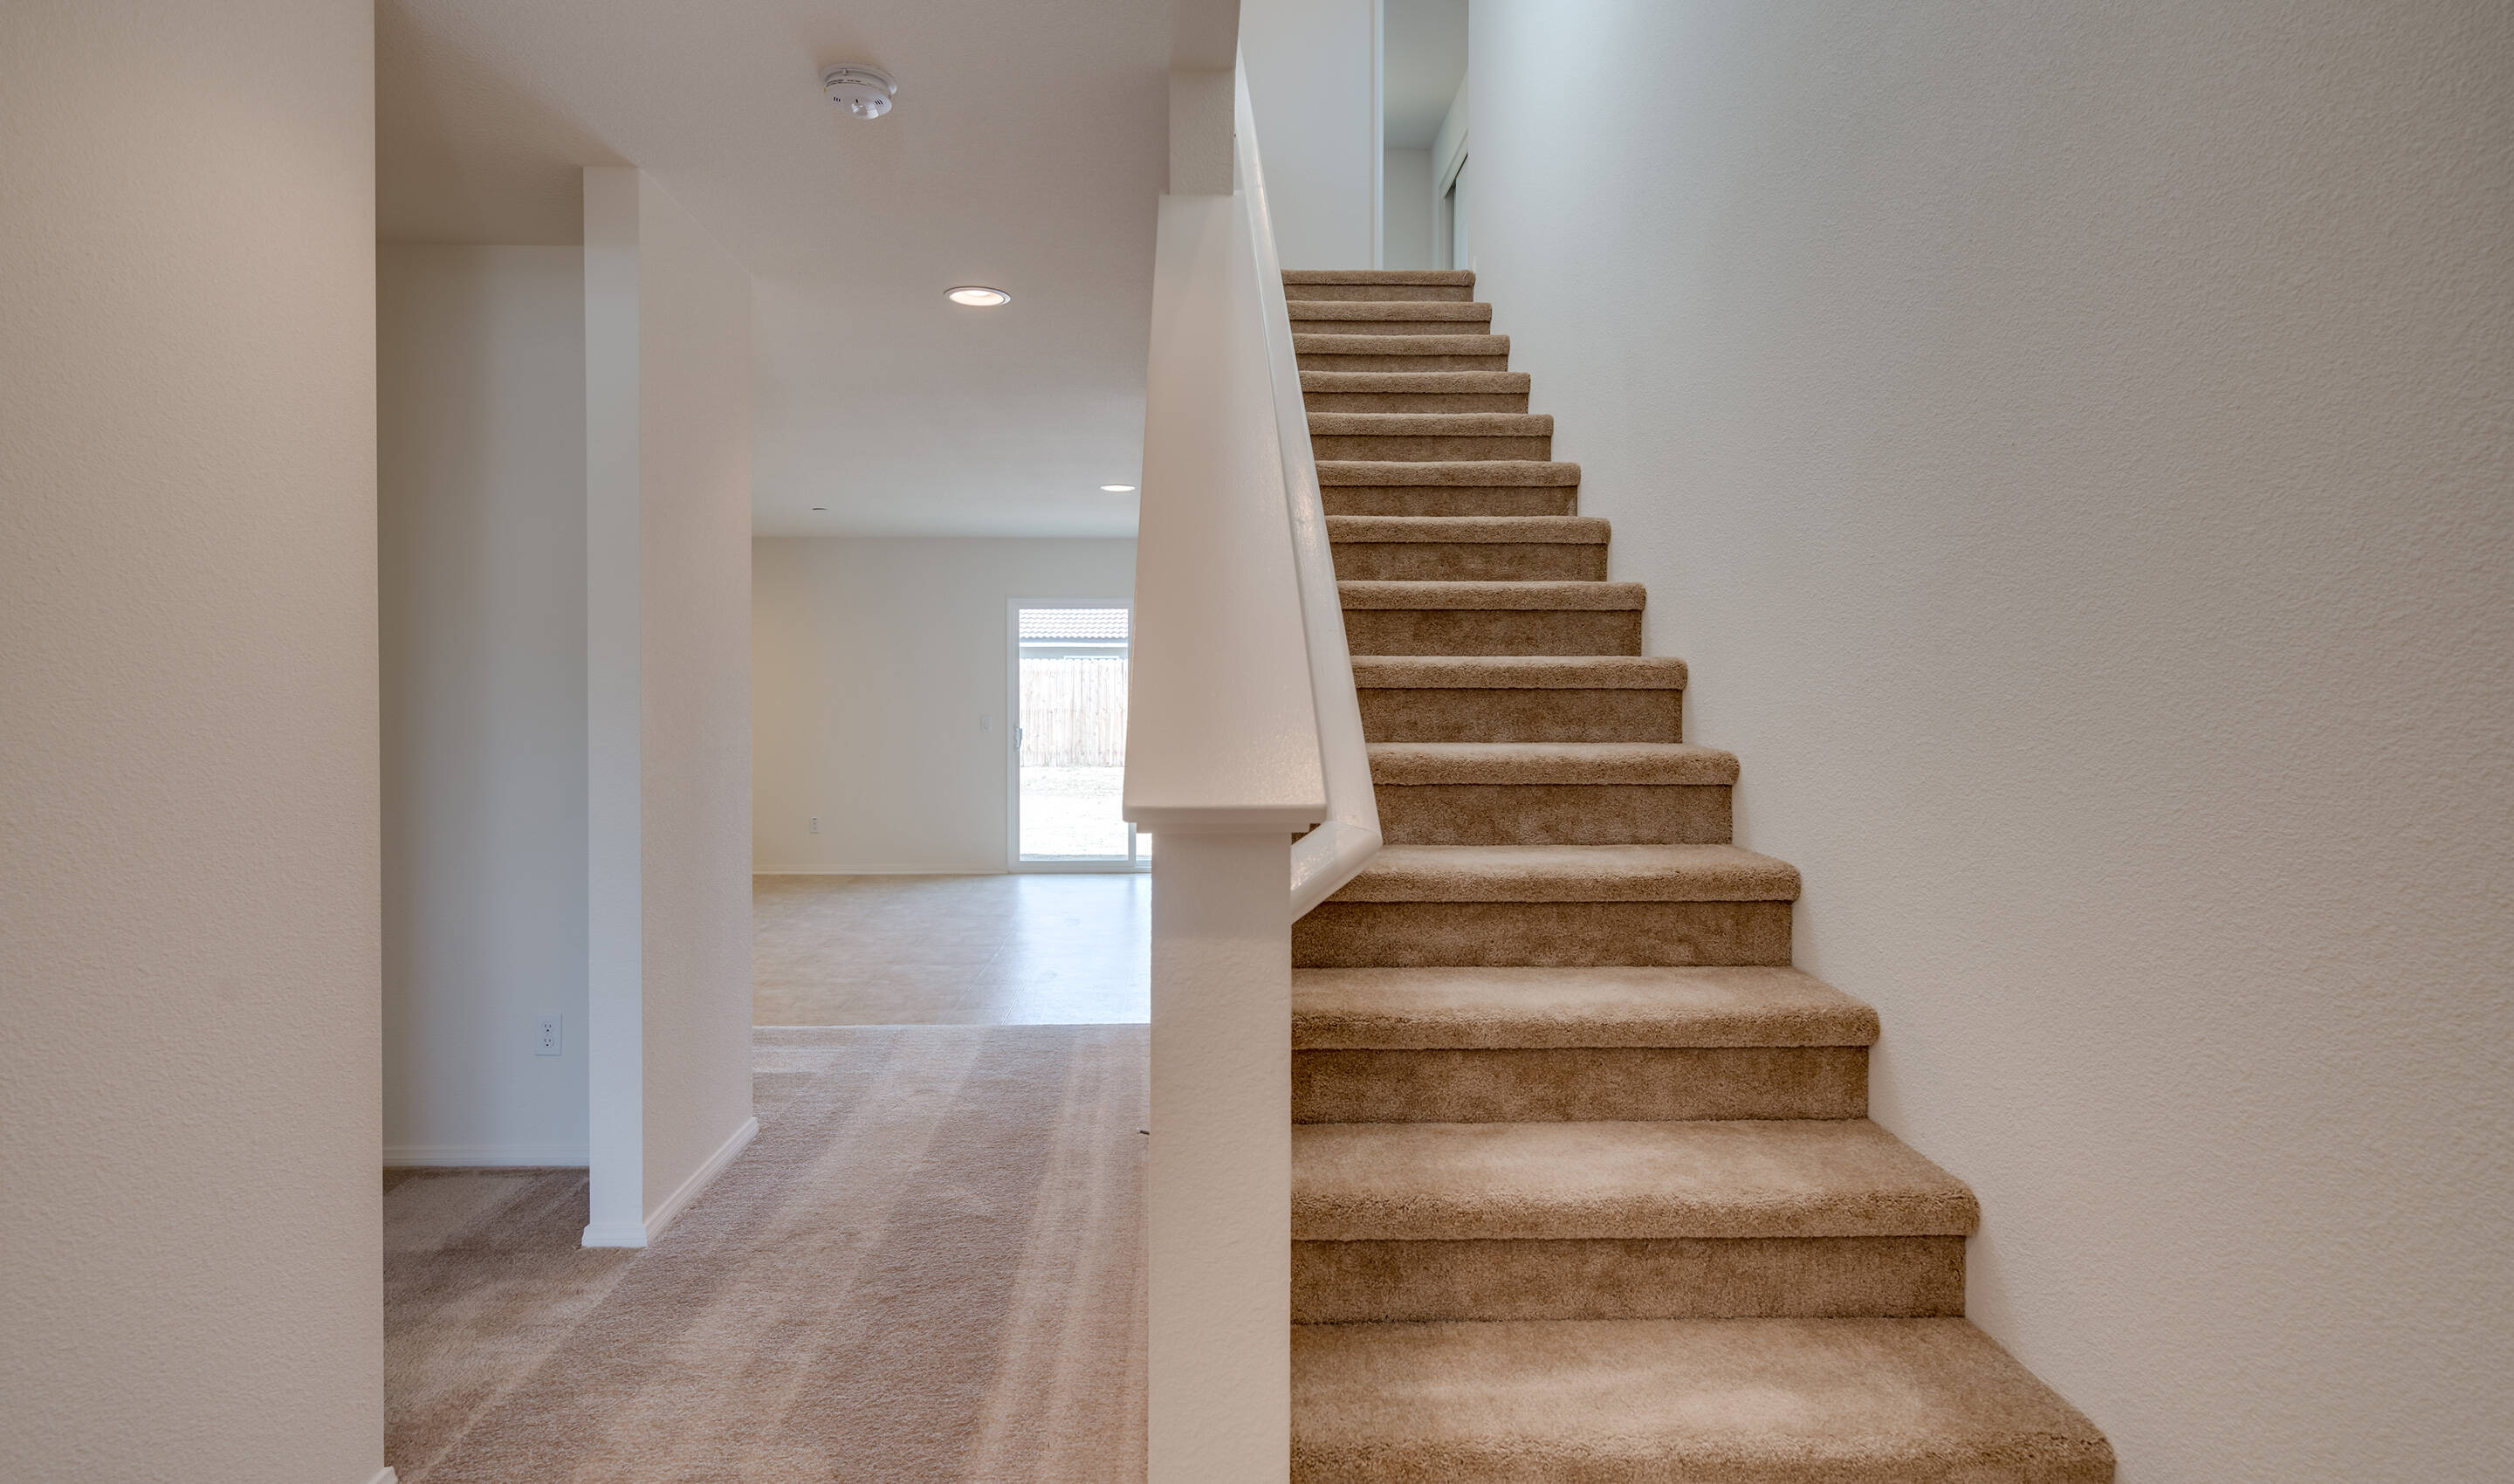 sol-foyer-aspire-at-arvin-new-homes-arvin-ca